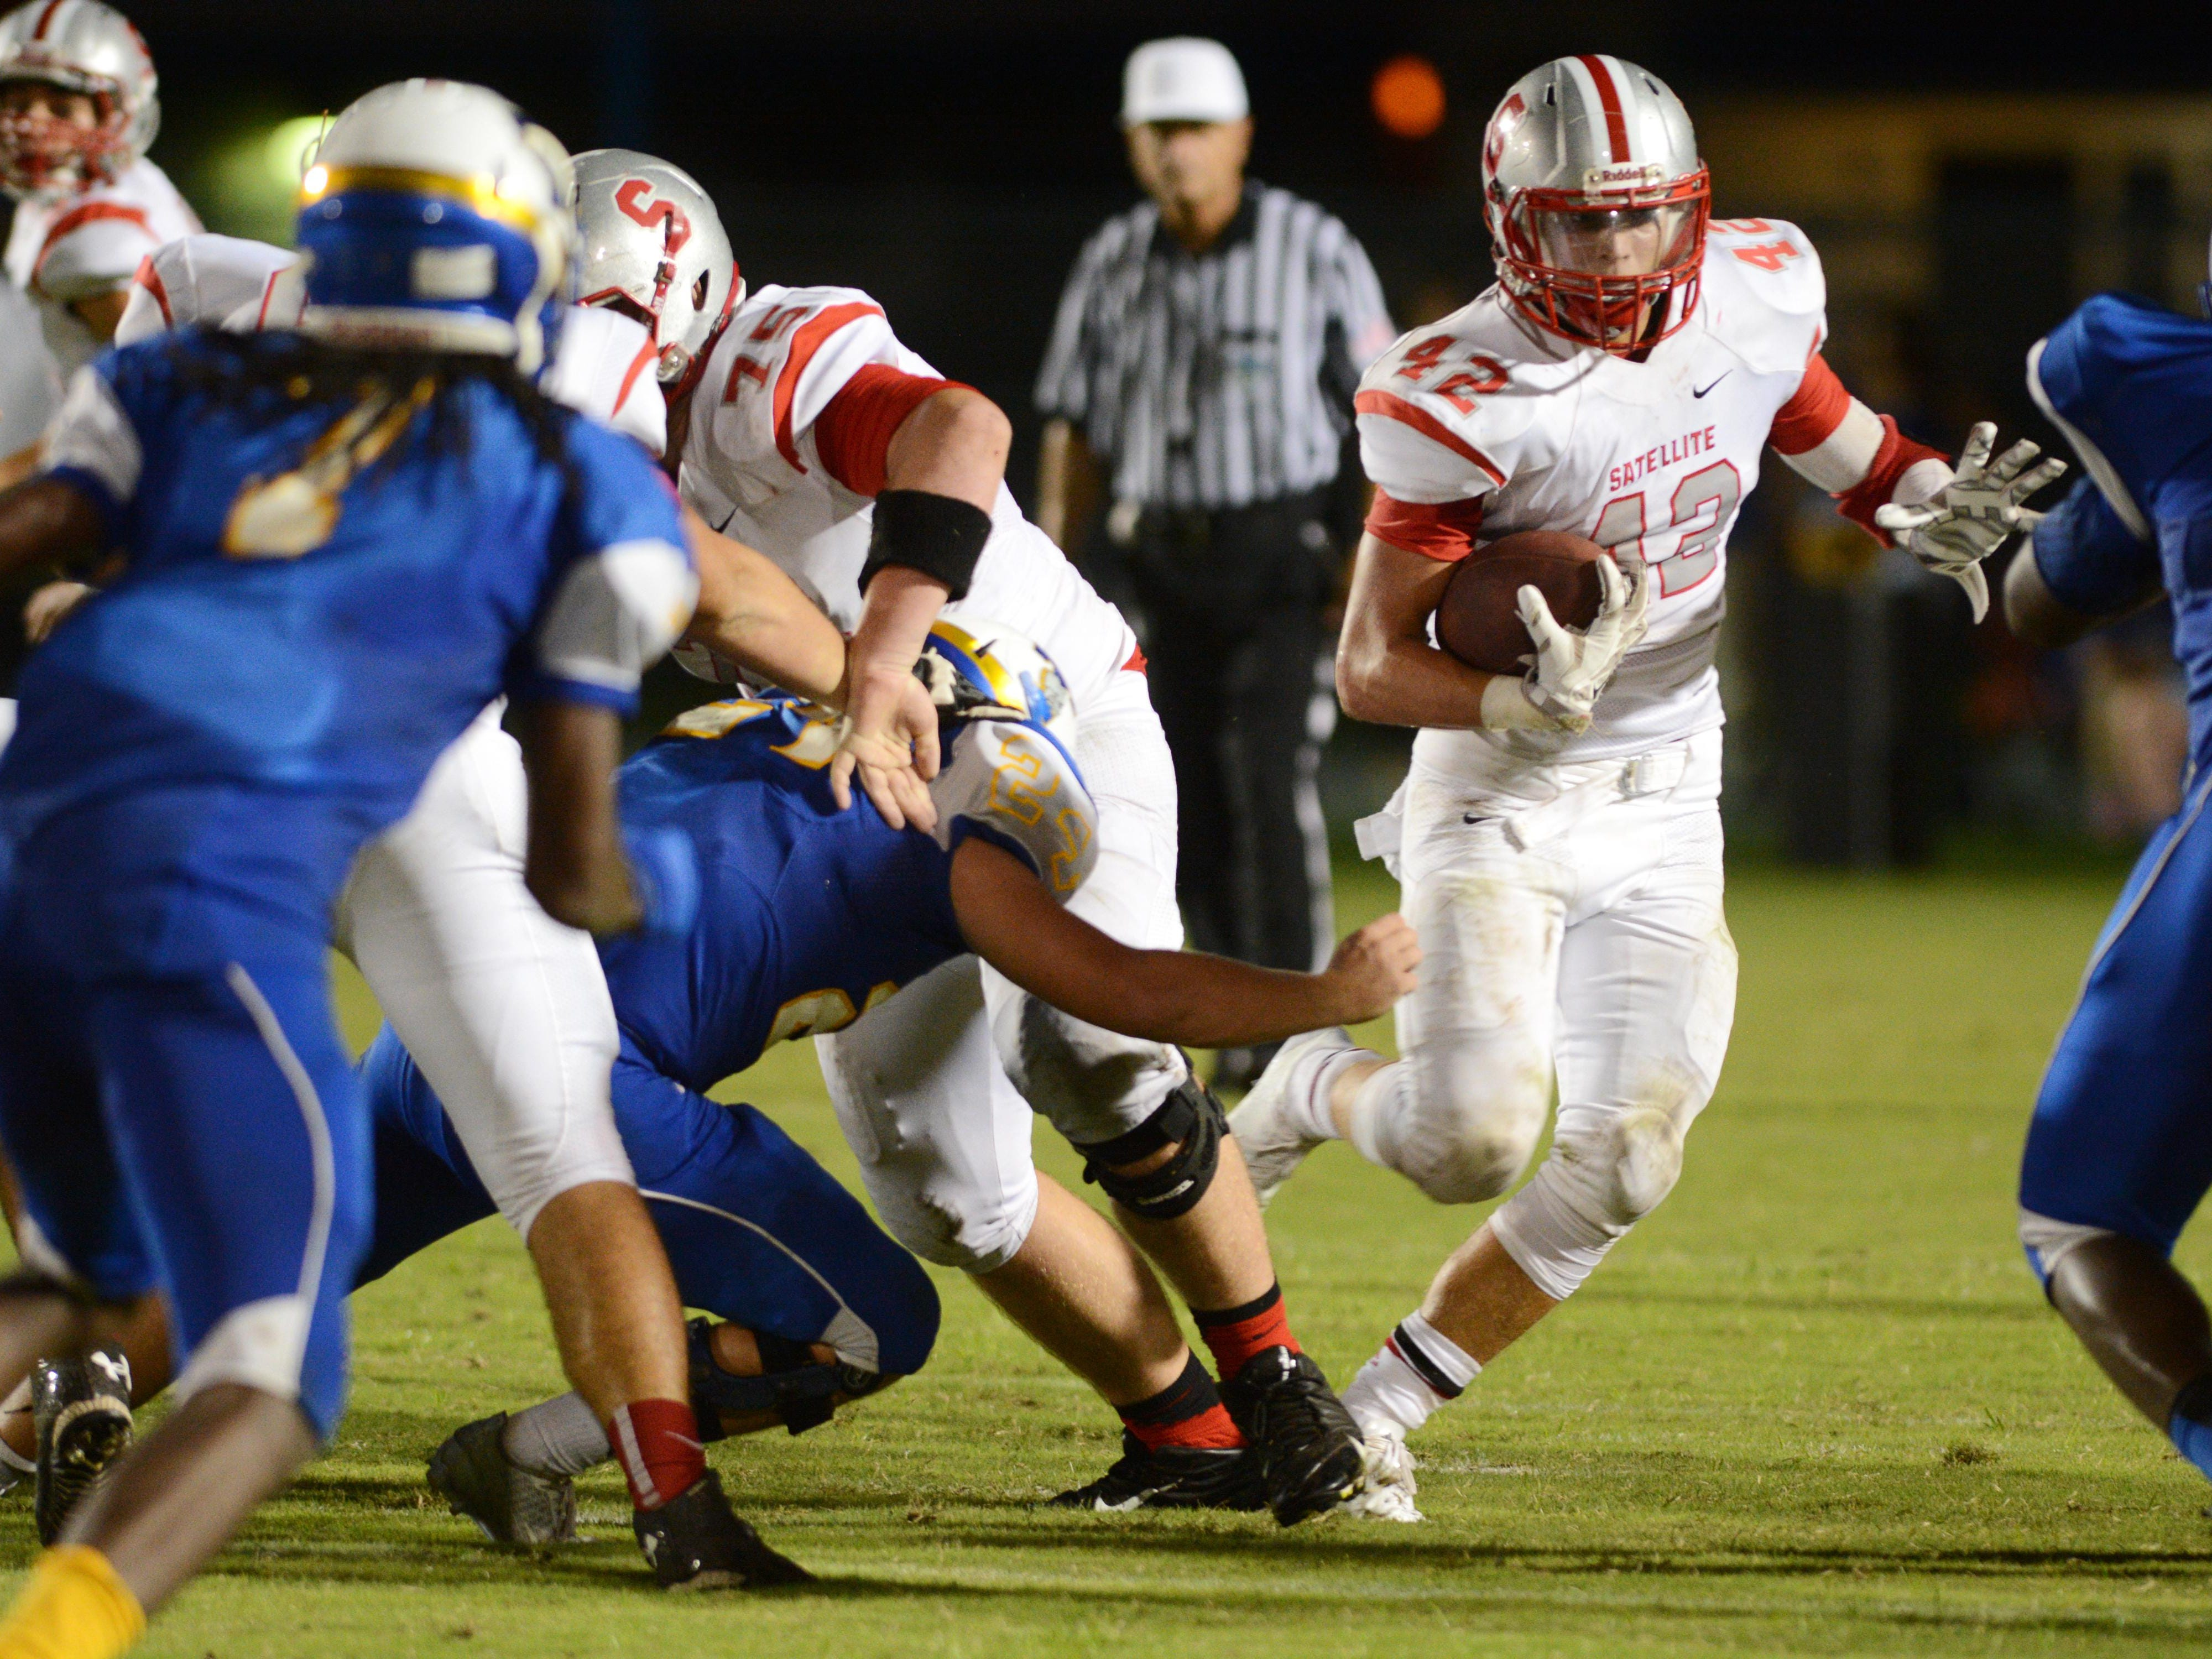 Zach Switzer of Satellite (42) breaks into the open during last week's game in Titusville.